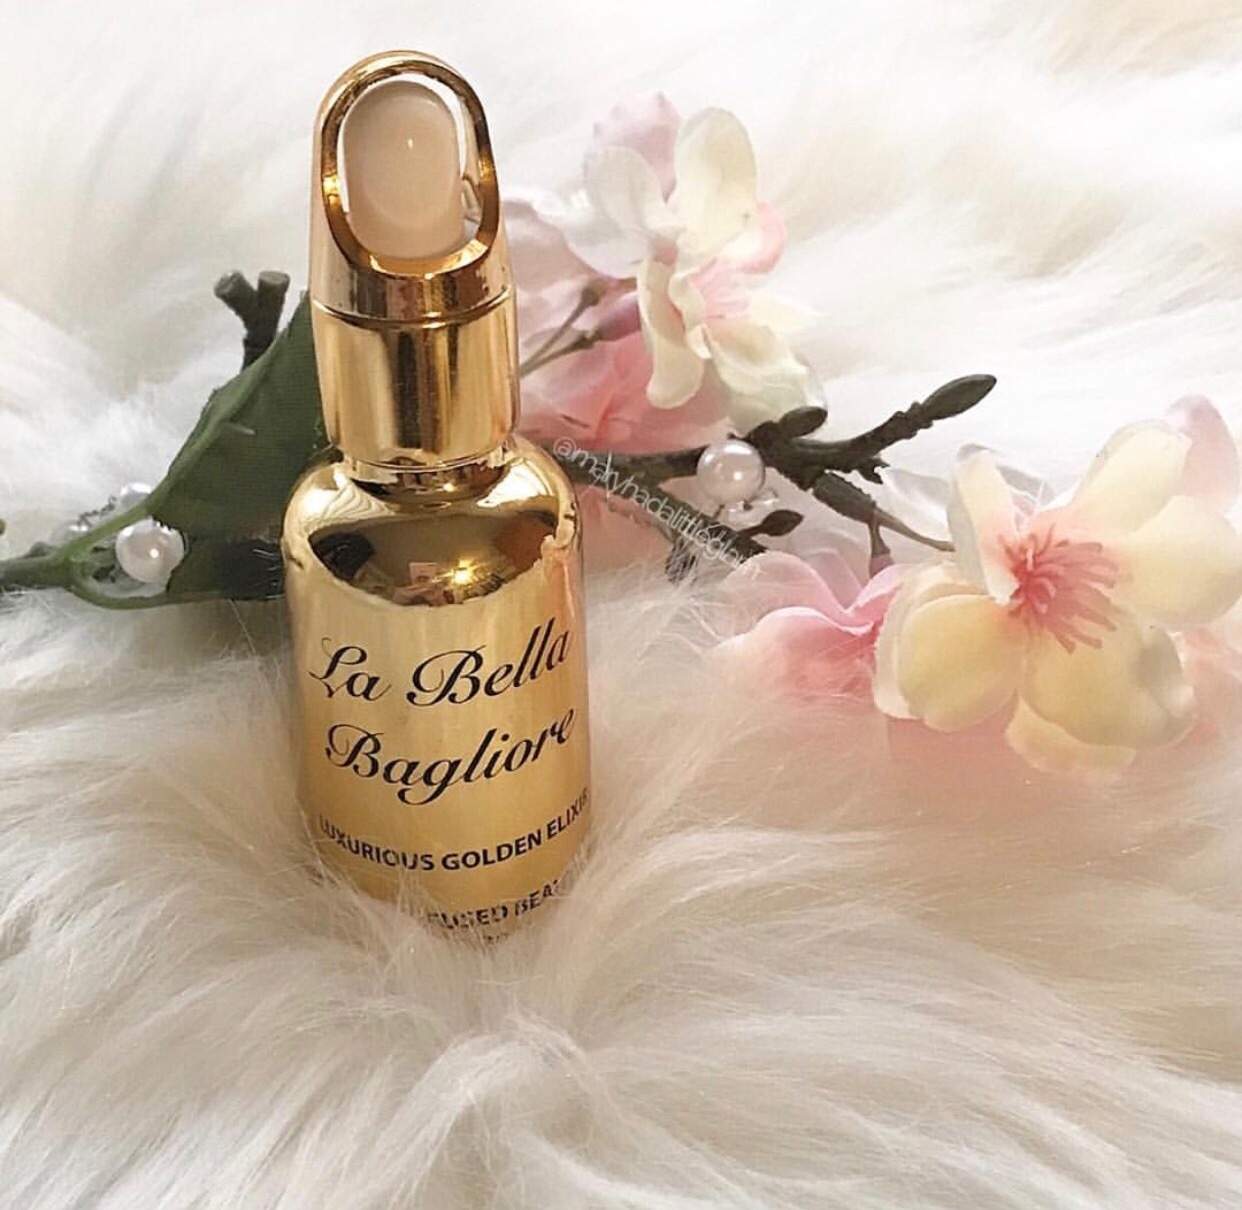 @labellabagliore luxurious golden elixir 24k gold infused beauty oil